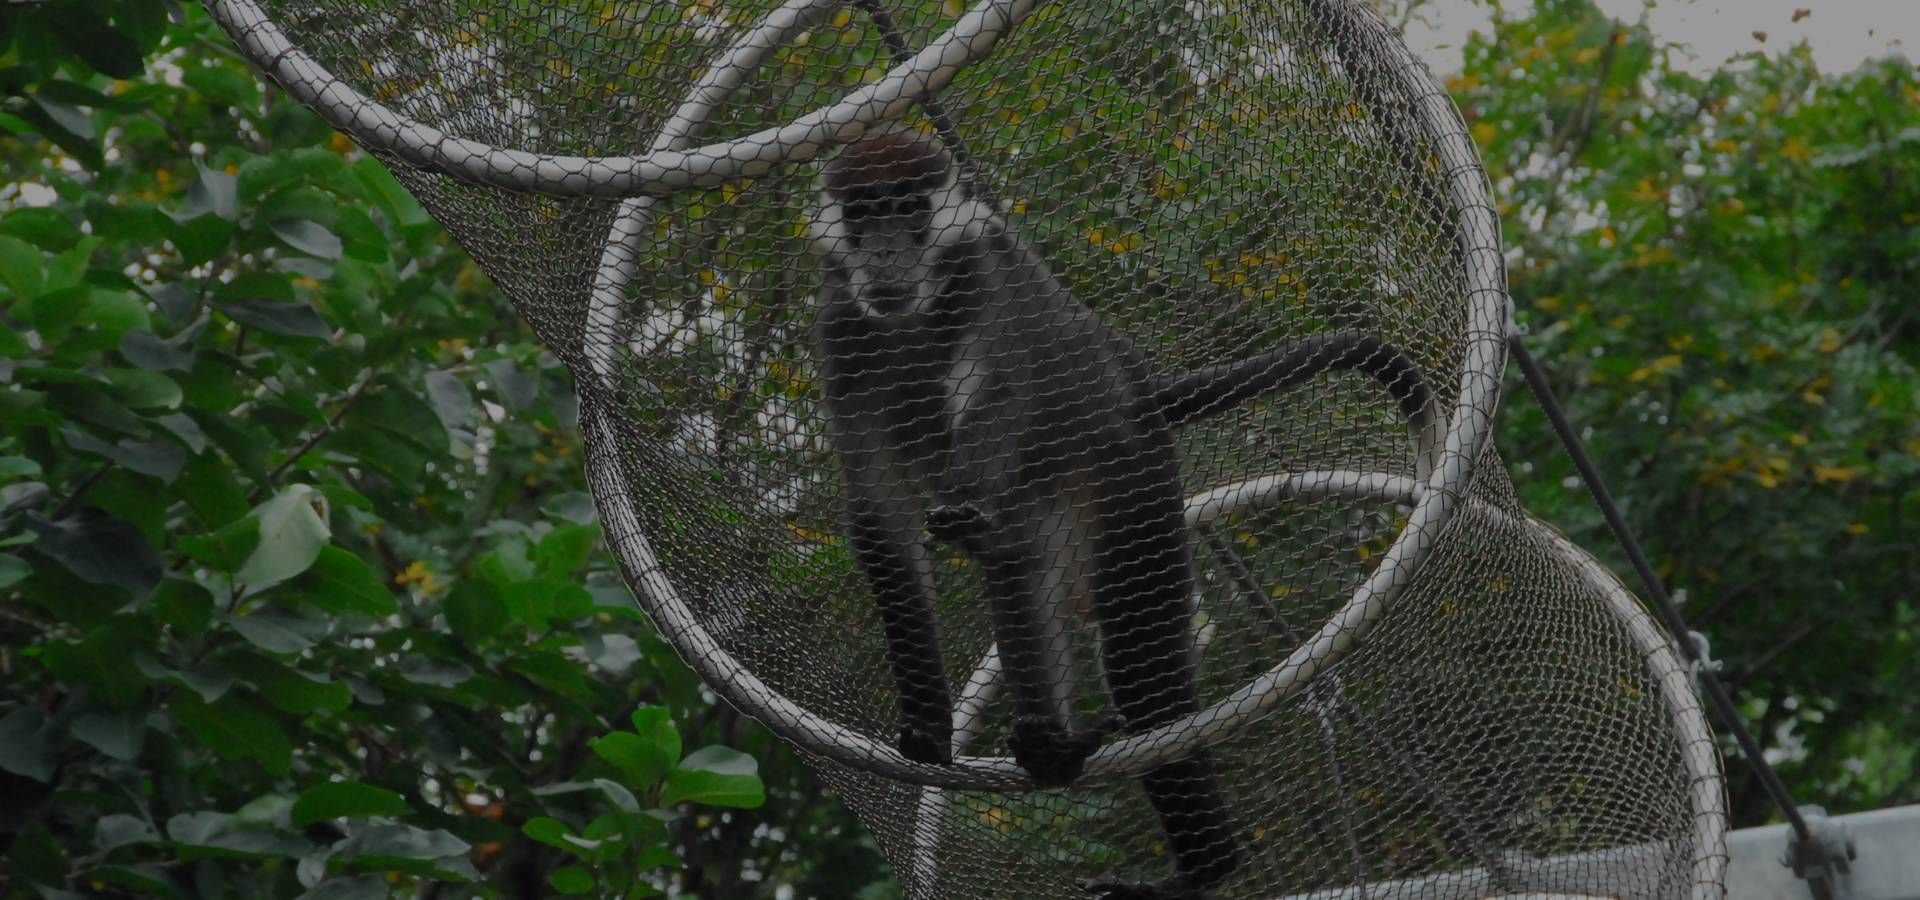 There is a monkey in rope mesh passageway.   zoo mesh   Pinterest ...